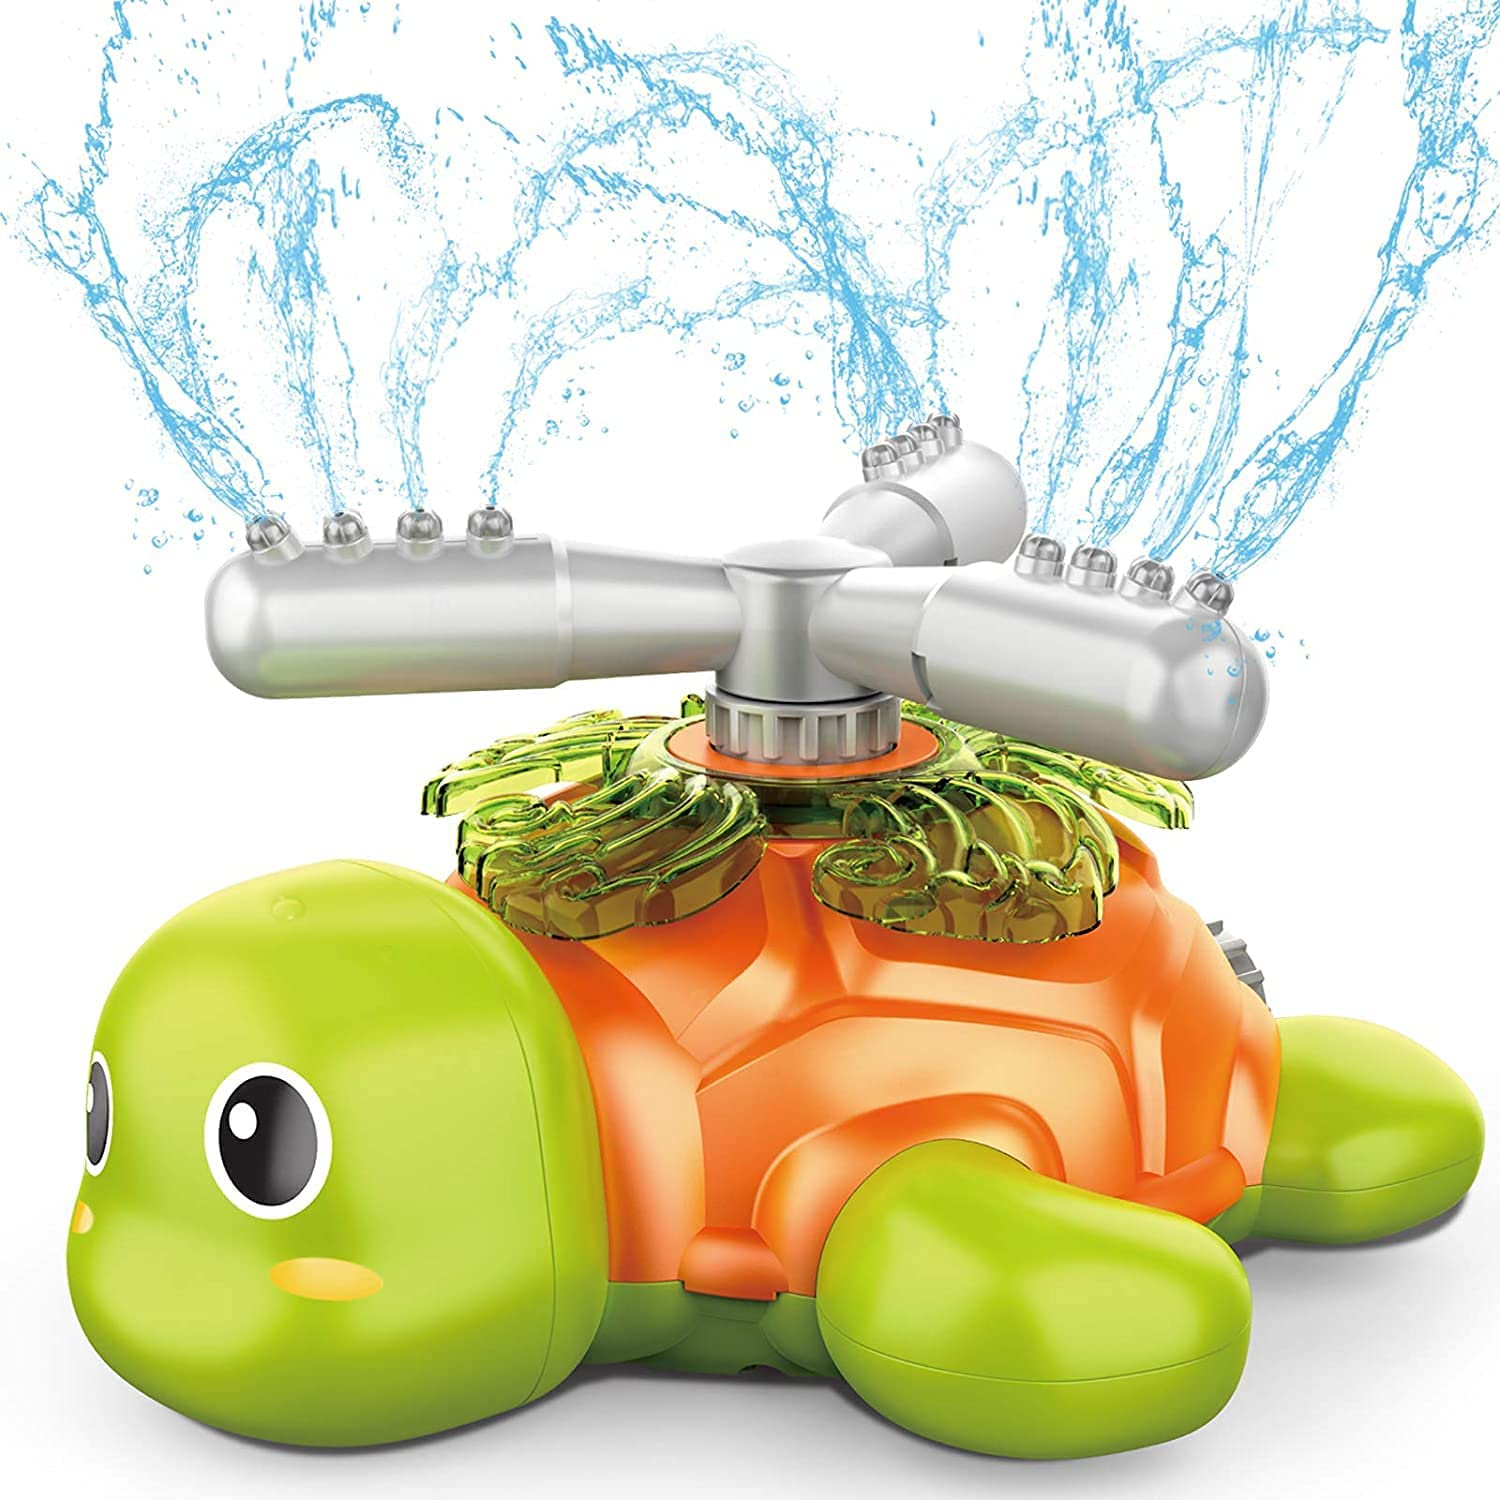 KQL Outdoor Sprinklers for Children and Toddlers, Rotating Tortoise Sprinklers in The Backyard with Swinging Hose Toys, Outdoor Water Splashing Fun in Summer, Spraying Garden Hoses Up to 8 Feet High